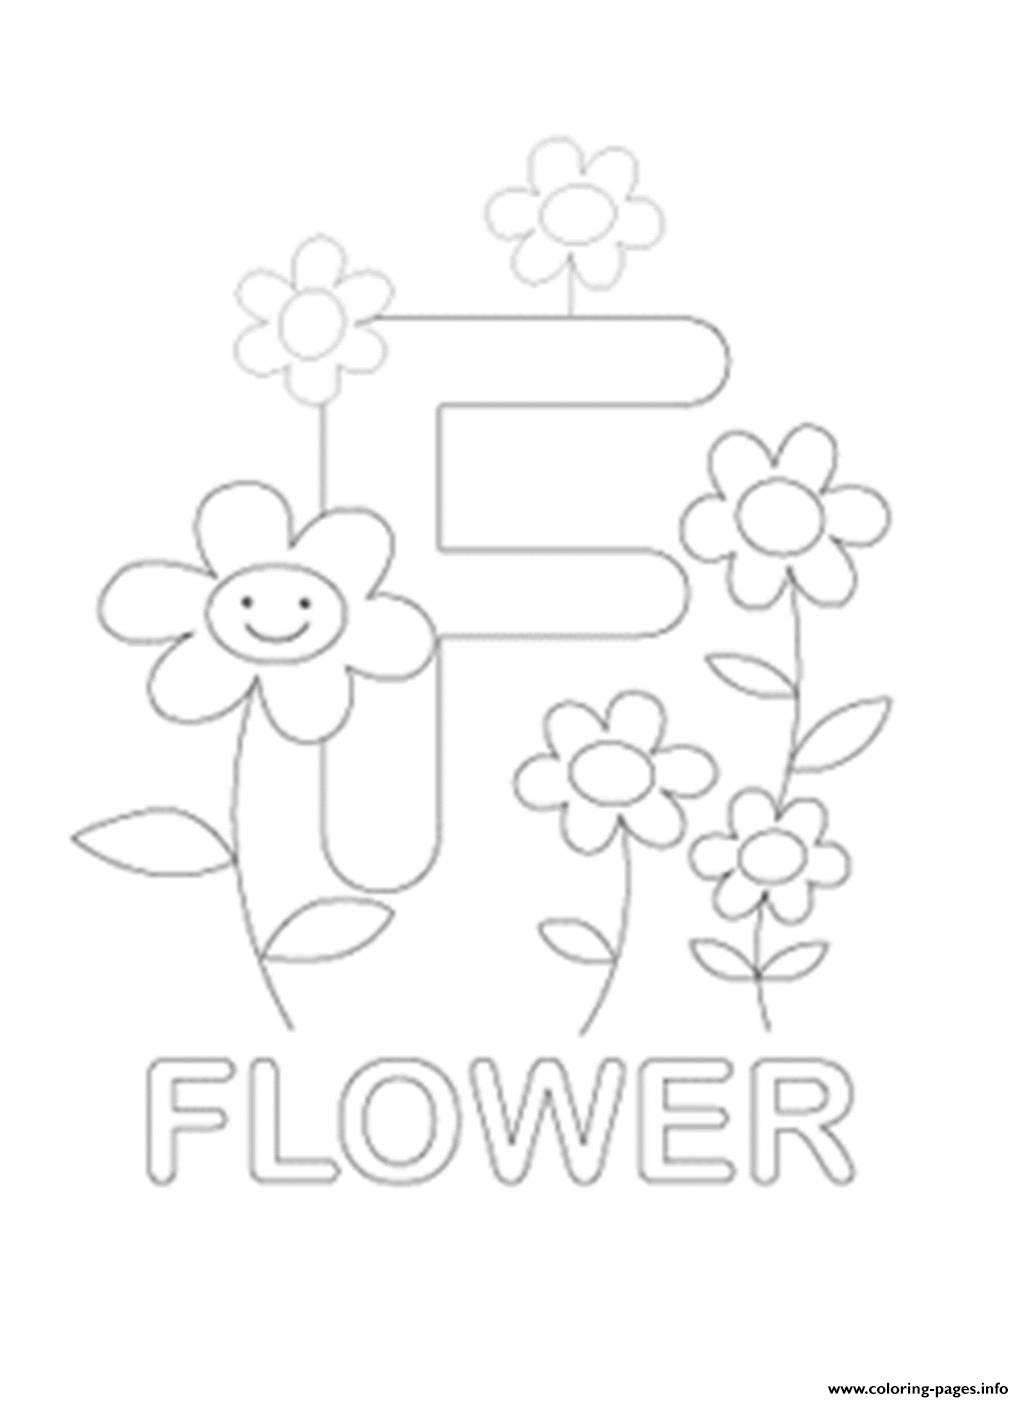 F For Flower Free Alphabet S599e Coloring Pages Printable